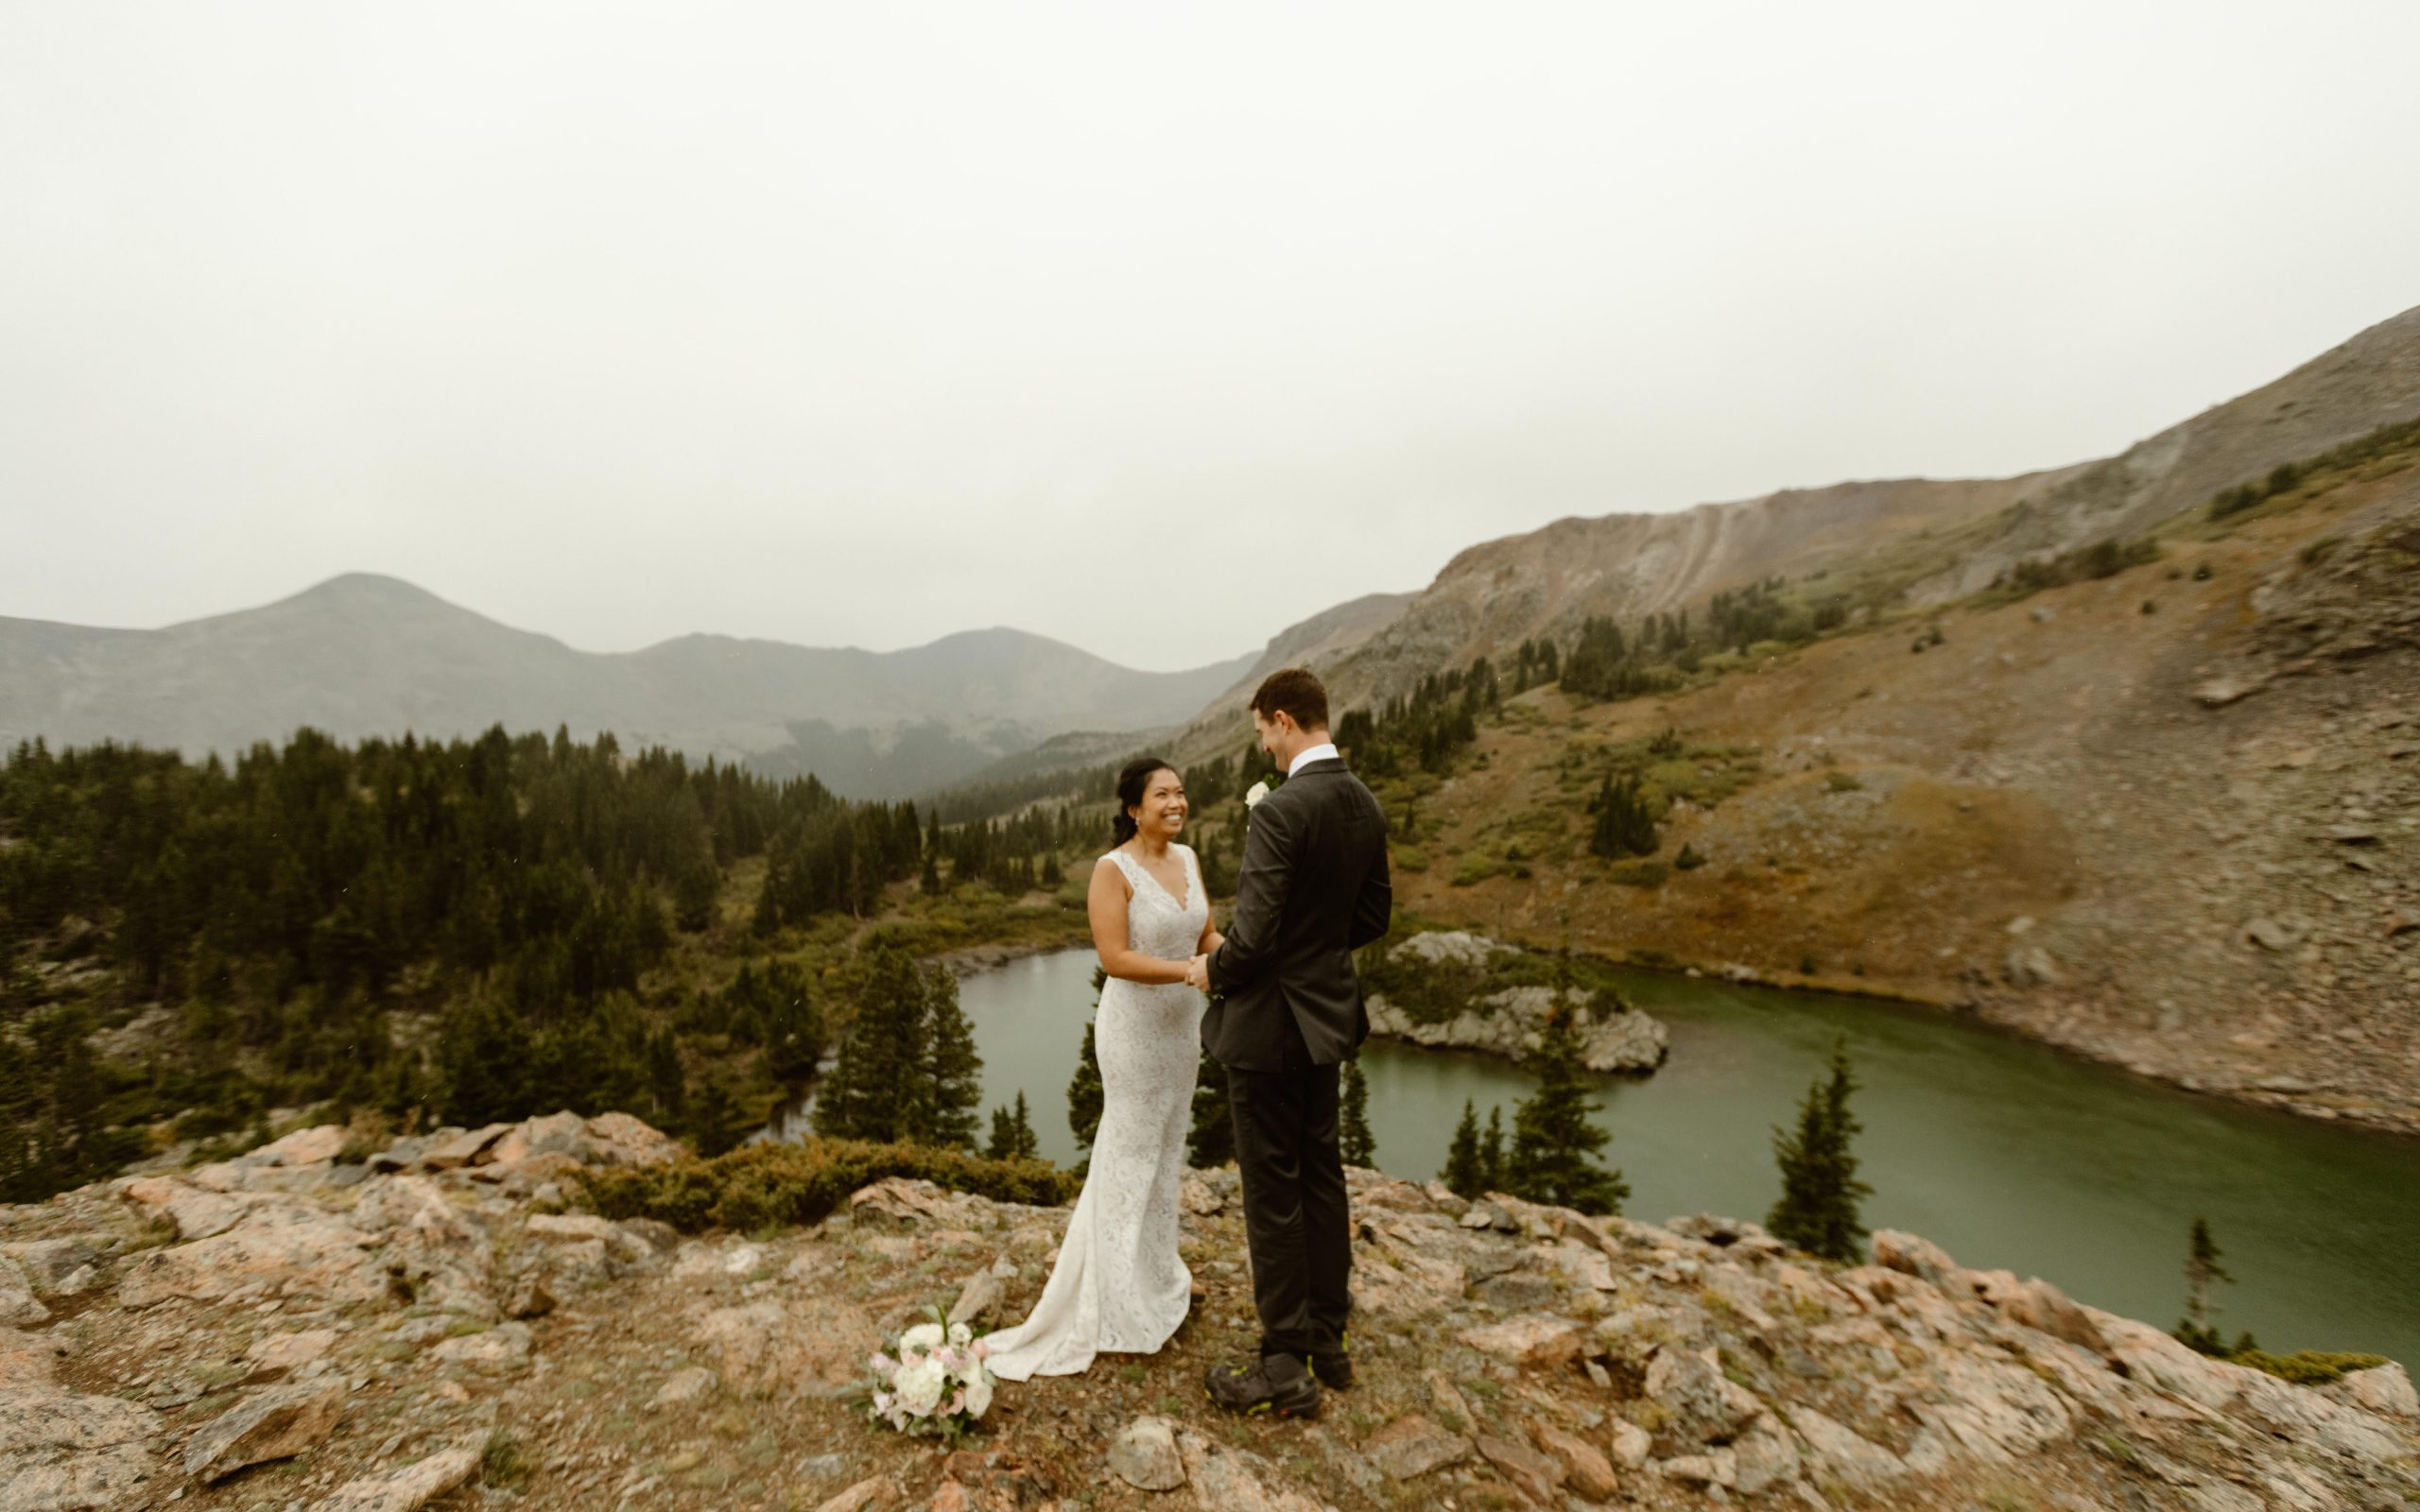 a bride and groom wearing wedding clothes are standing on top of a mountain during their elopement ceremony